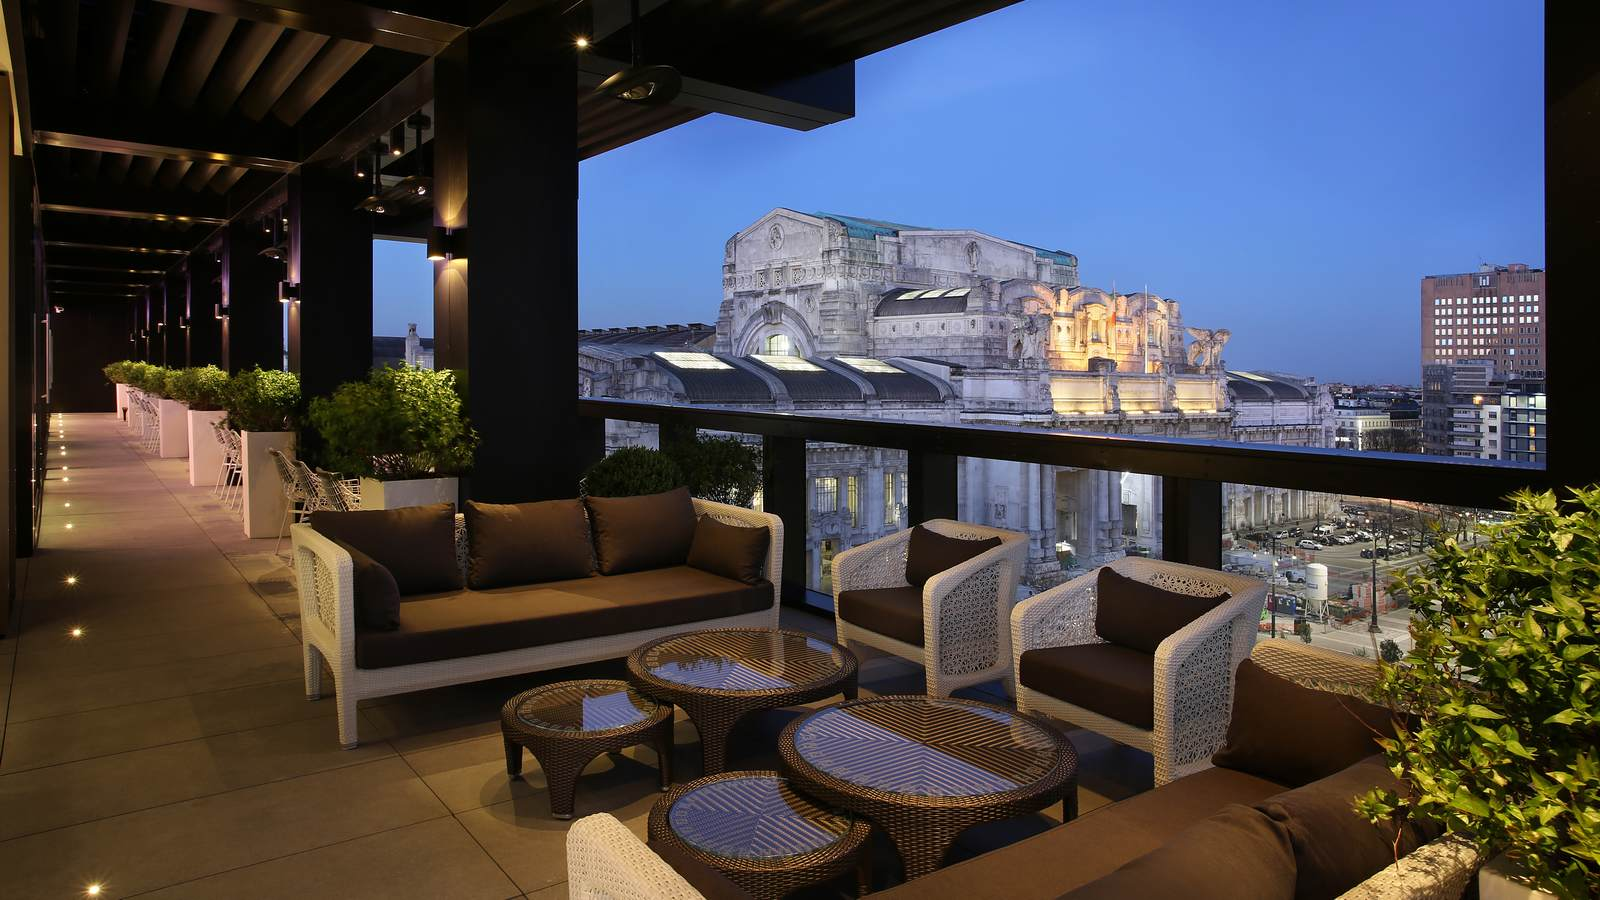 Terrazza-Gallia-Bar-Outdoor-Terrace-Milan - Mangiare da Dio ...